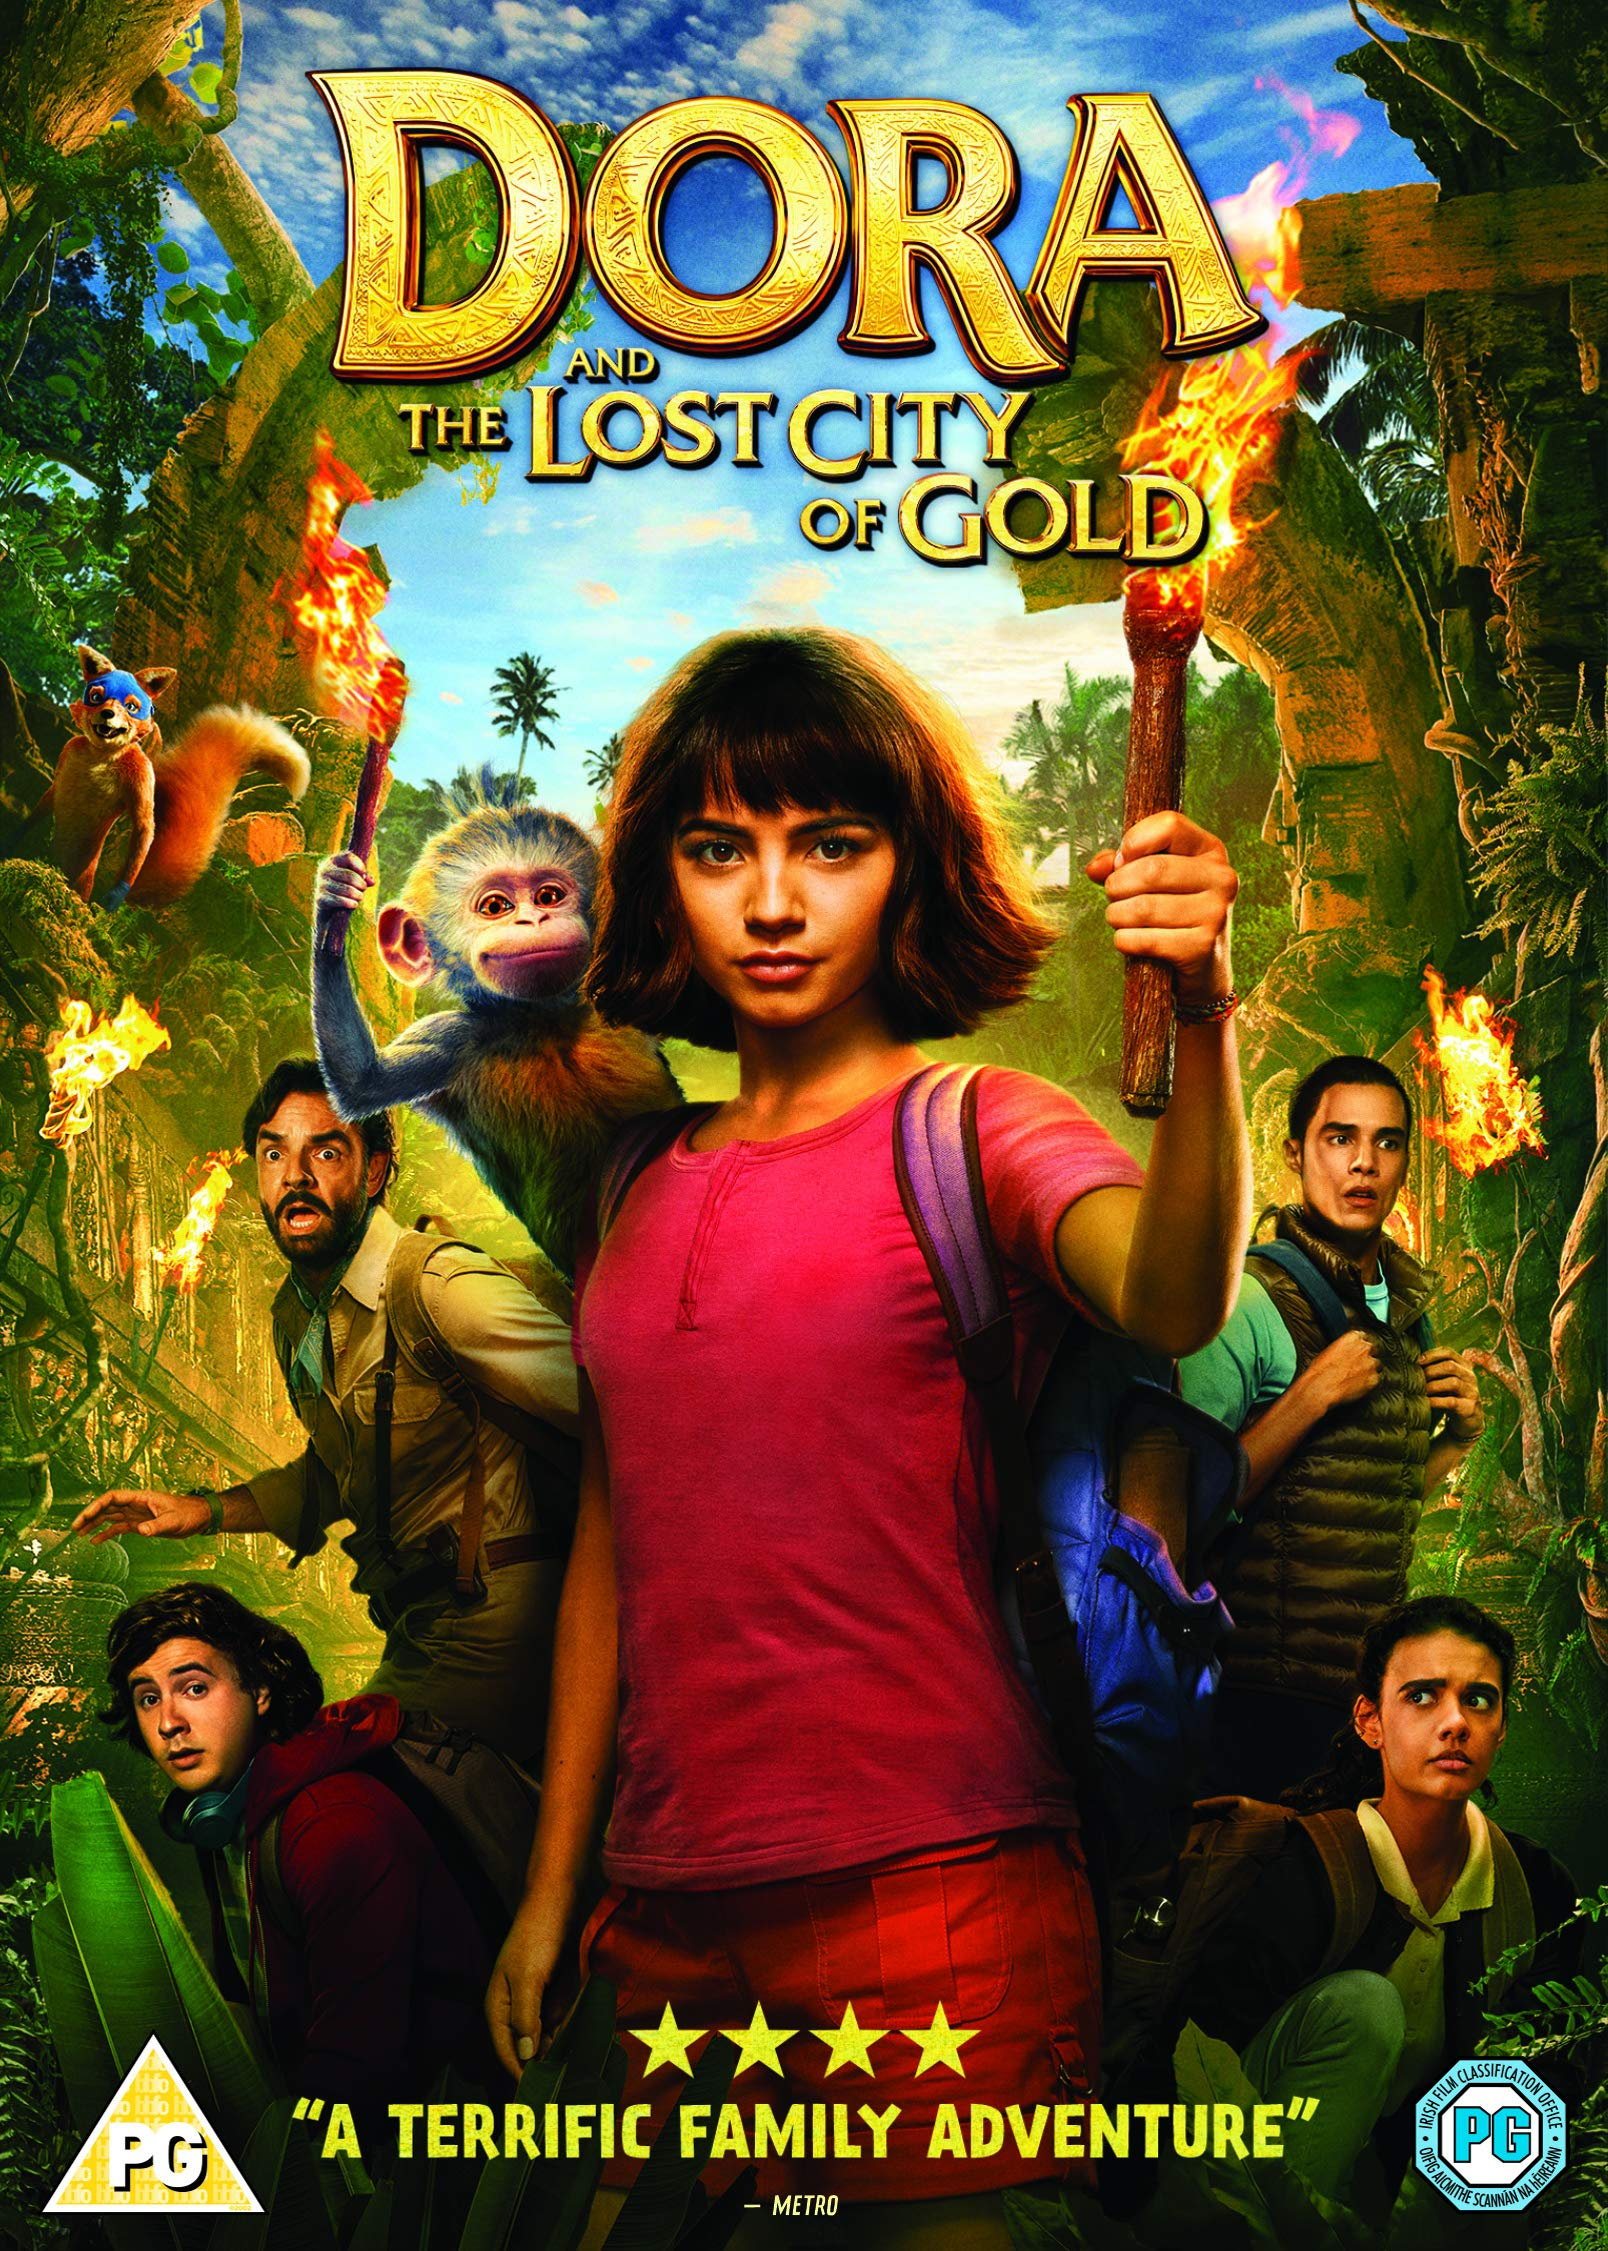 Dora And The Lost City of Gold - Dora The Explorer [The Movie] (DVD) [2019]